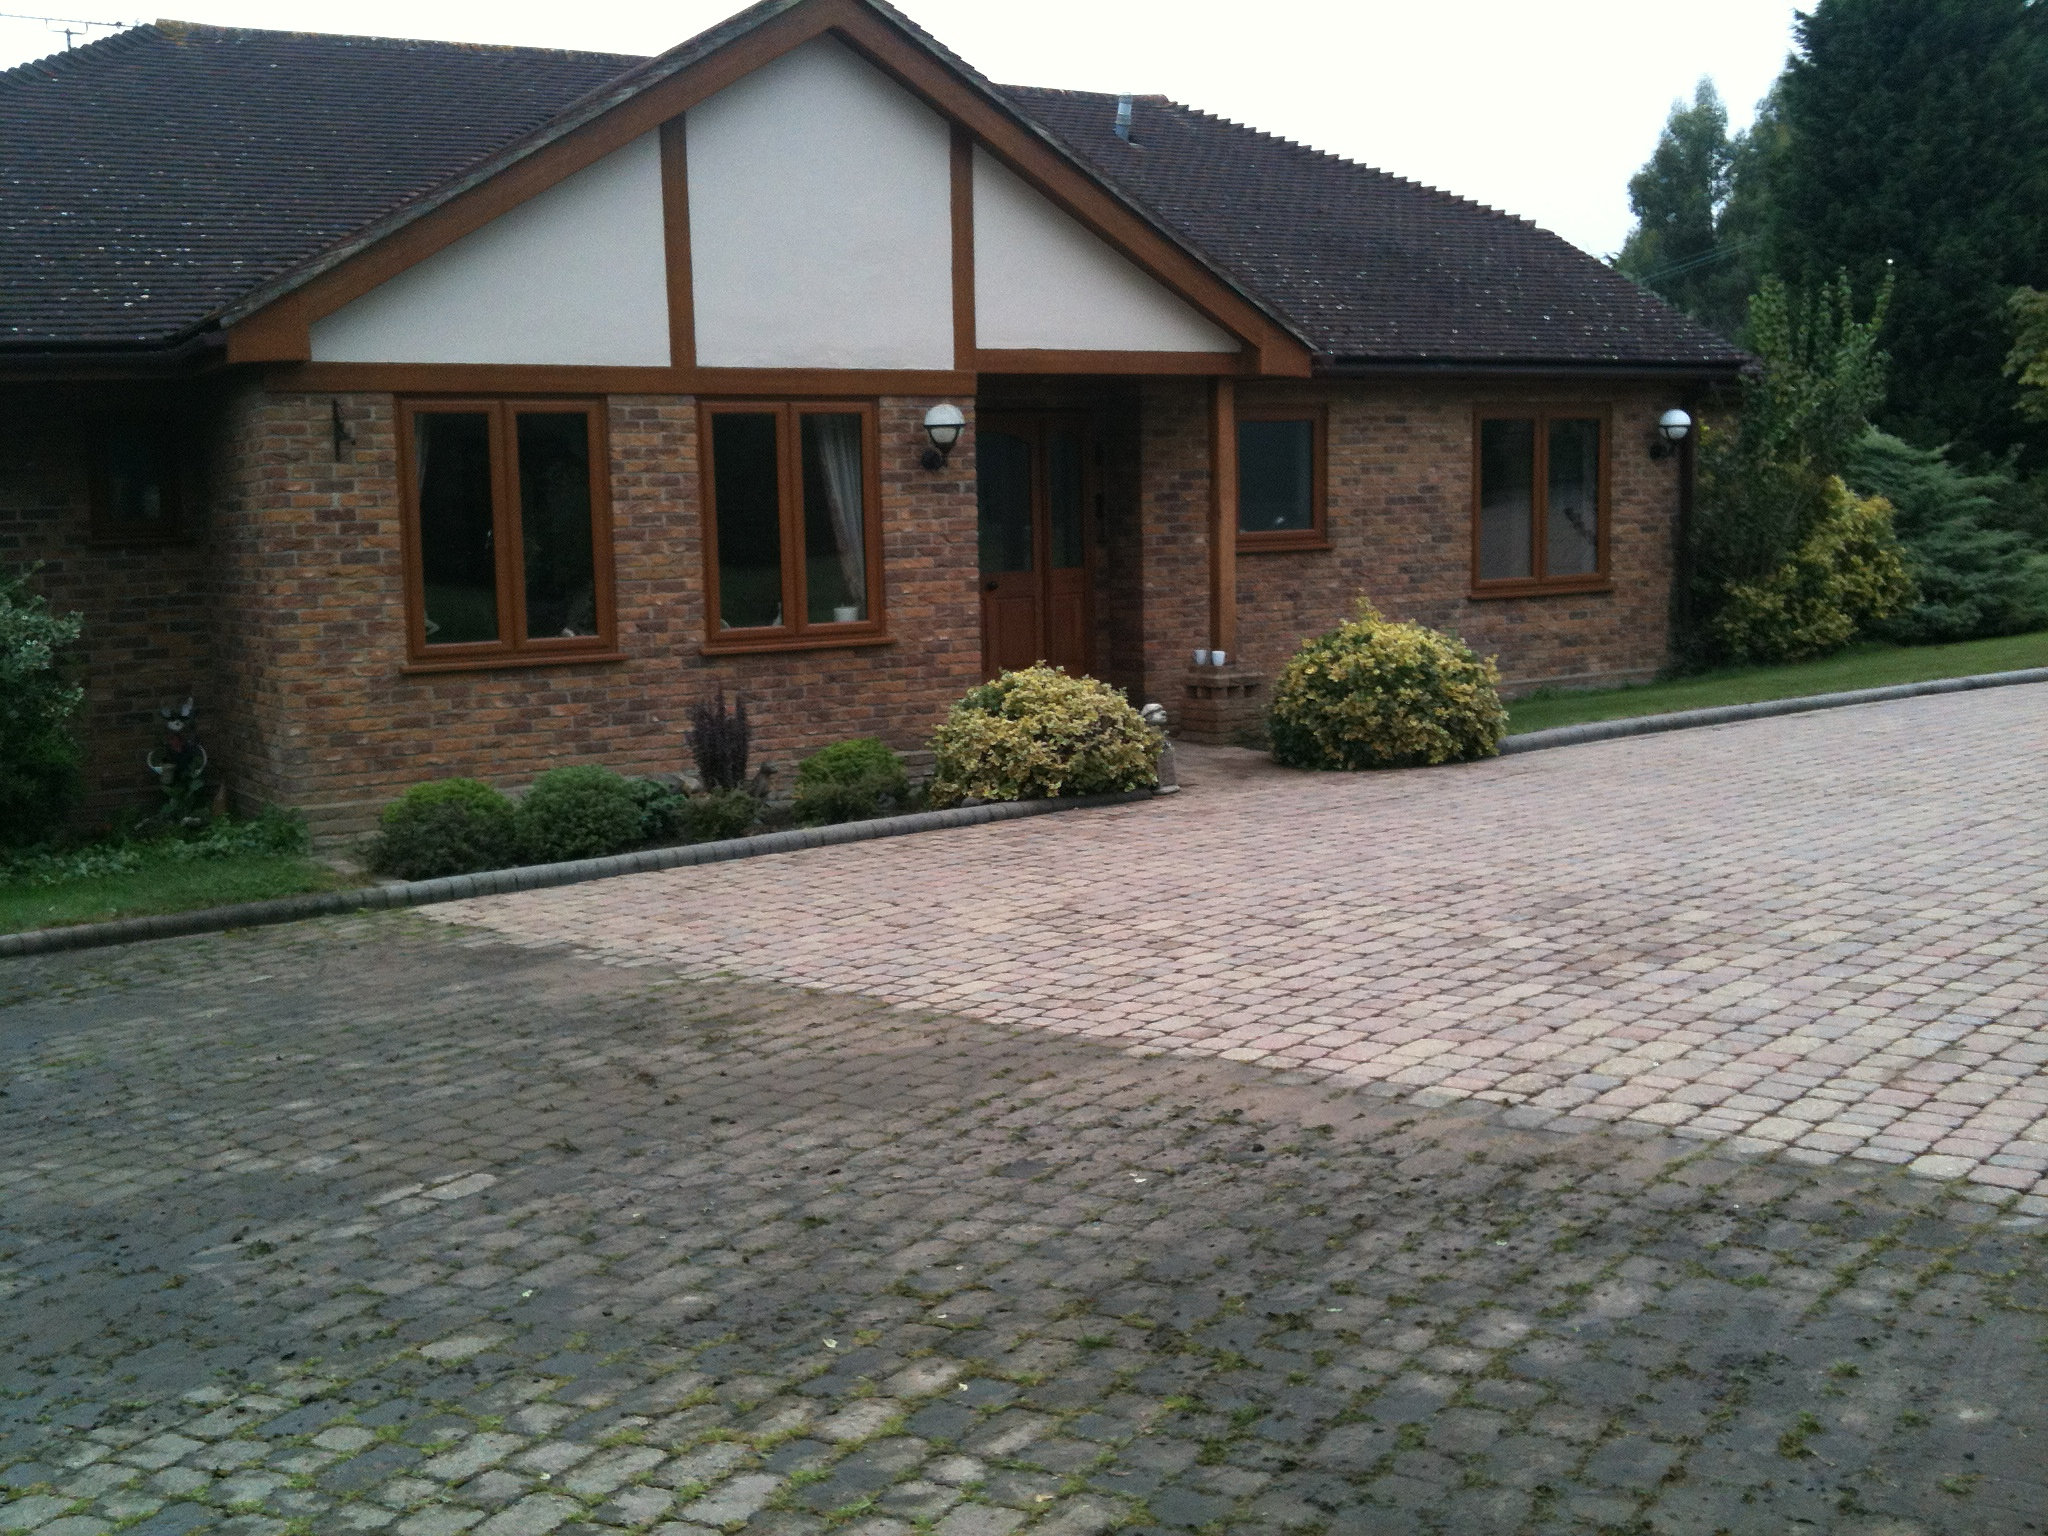 Prisma pro interior plat series amp tech series - Driveway Cleaning Essex Patio Cleaning Essex Gutter Cleaning Essex